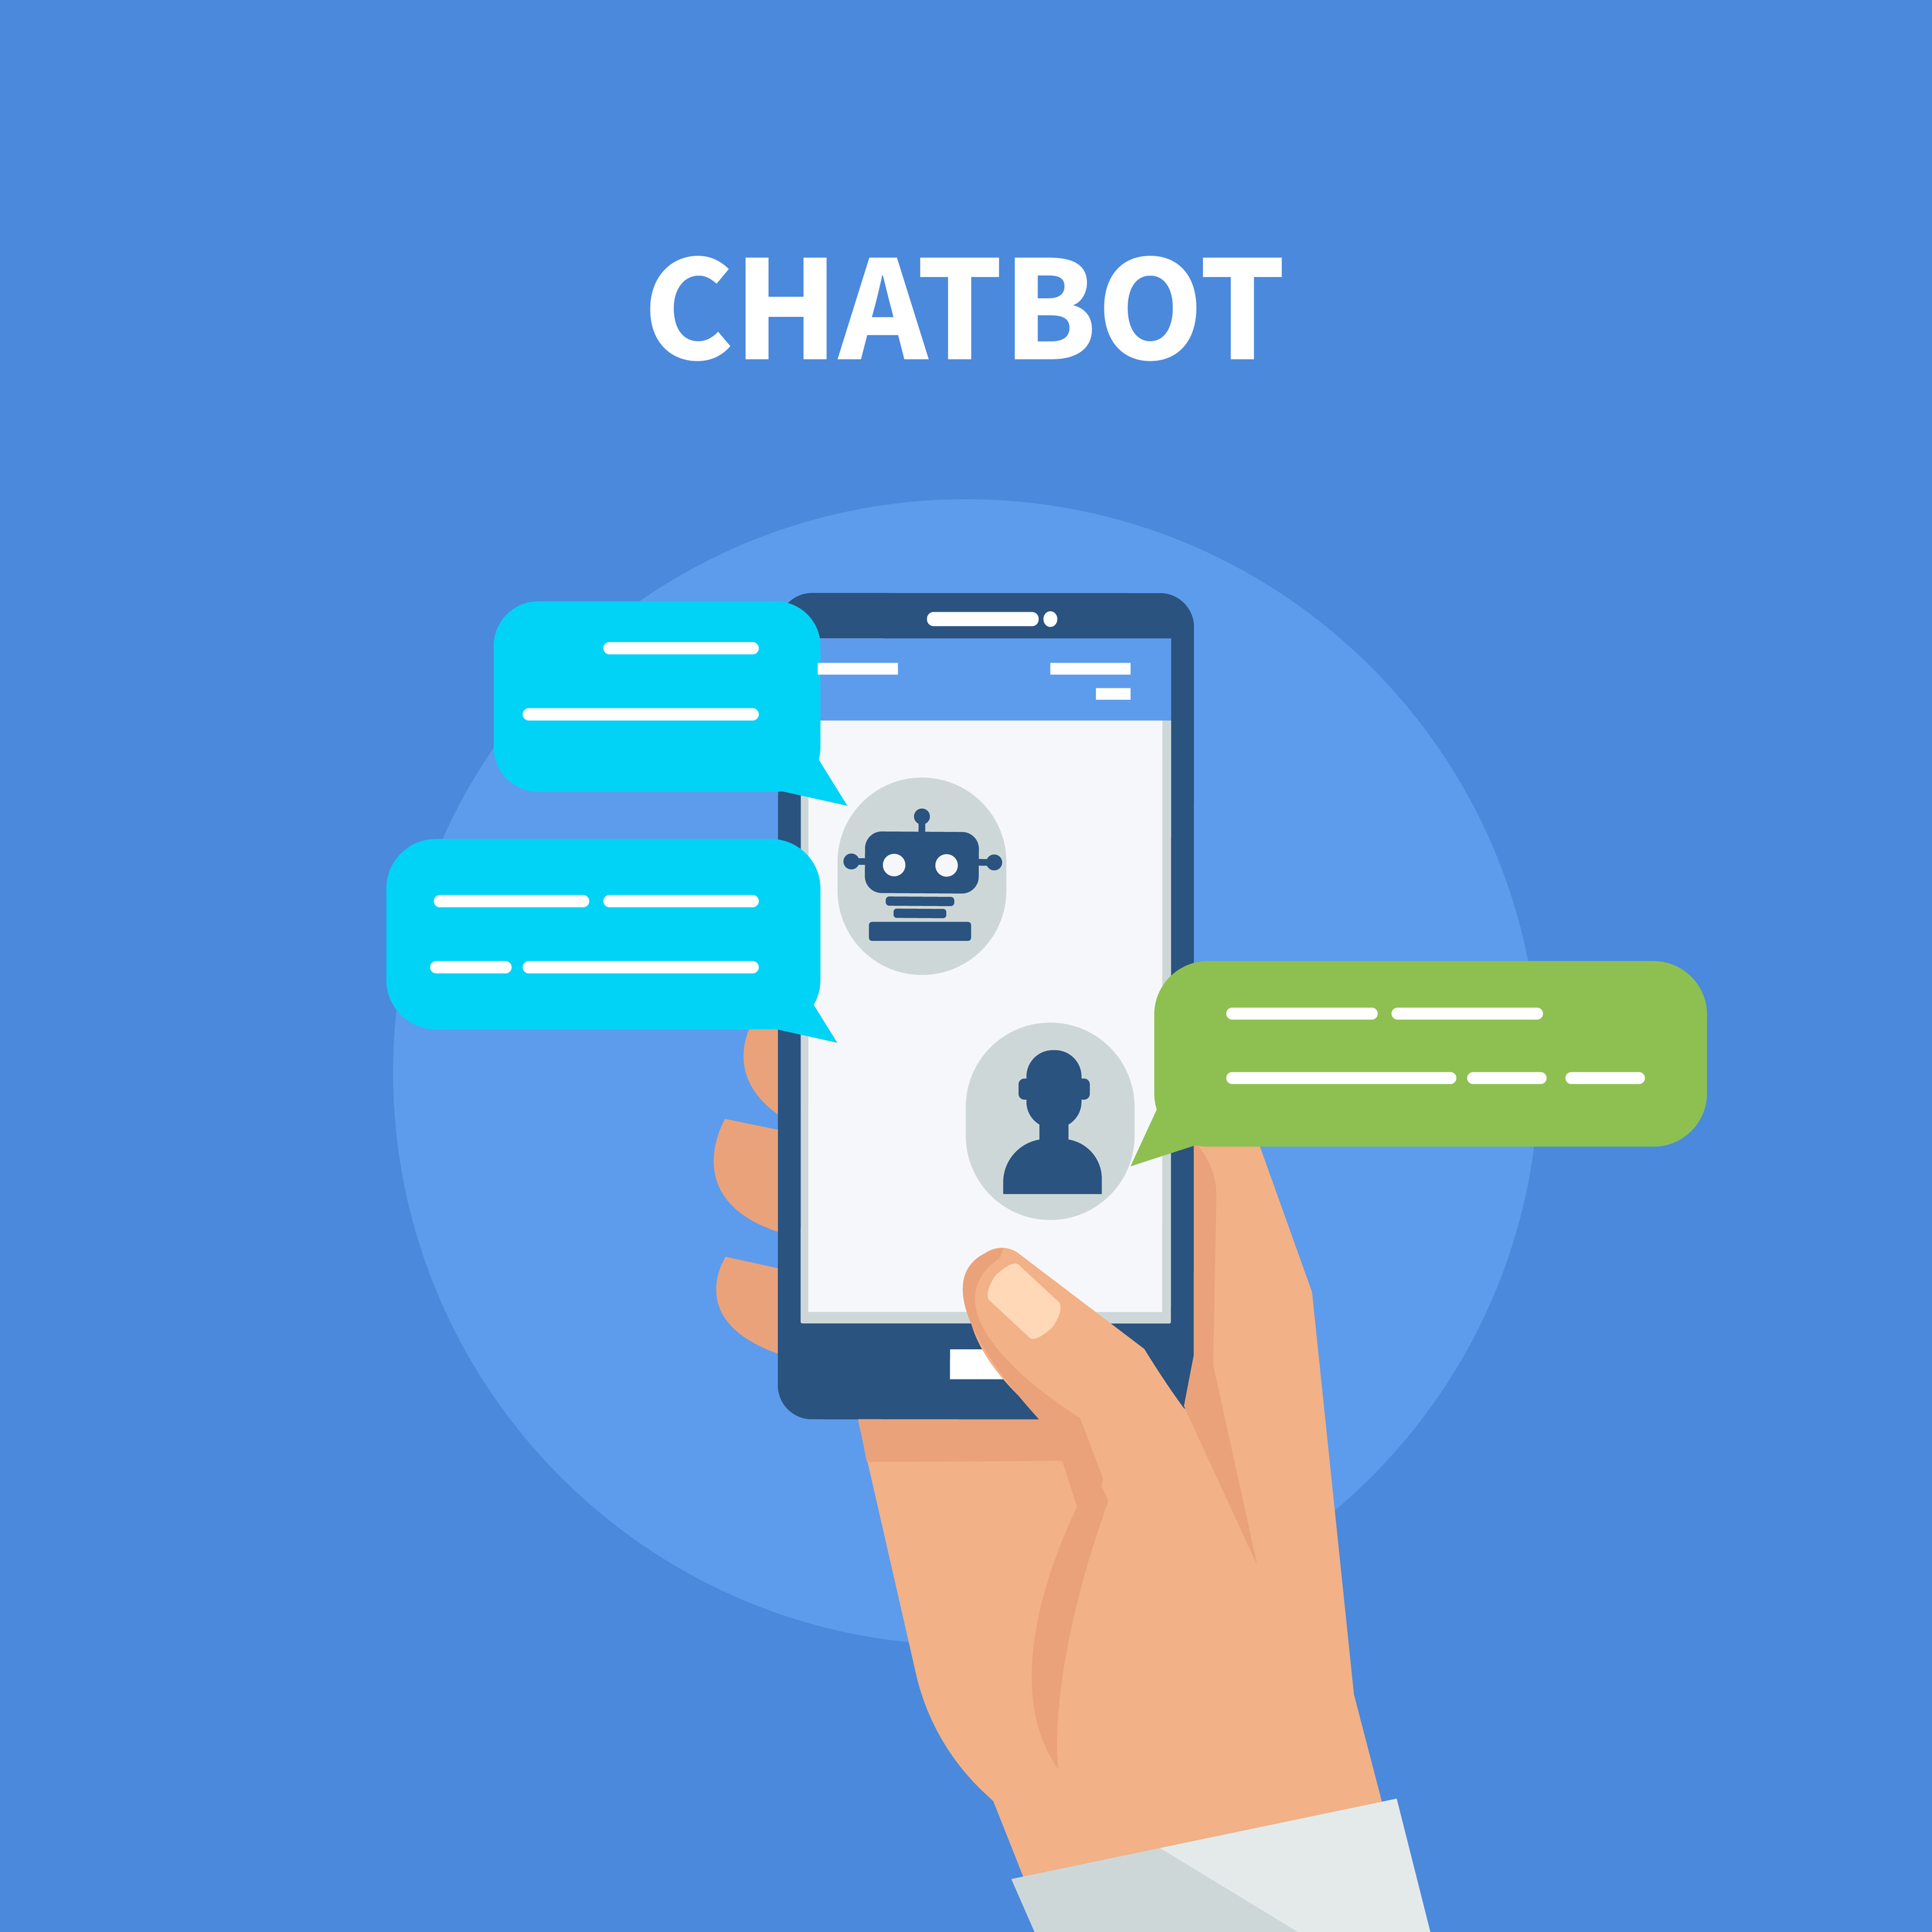 Chatbot Technology